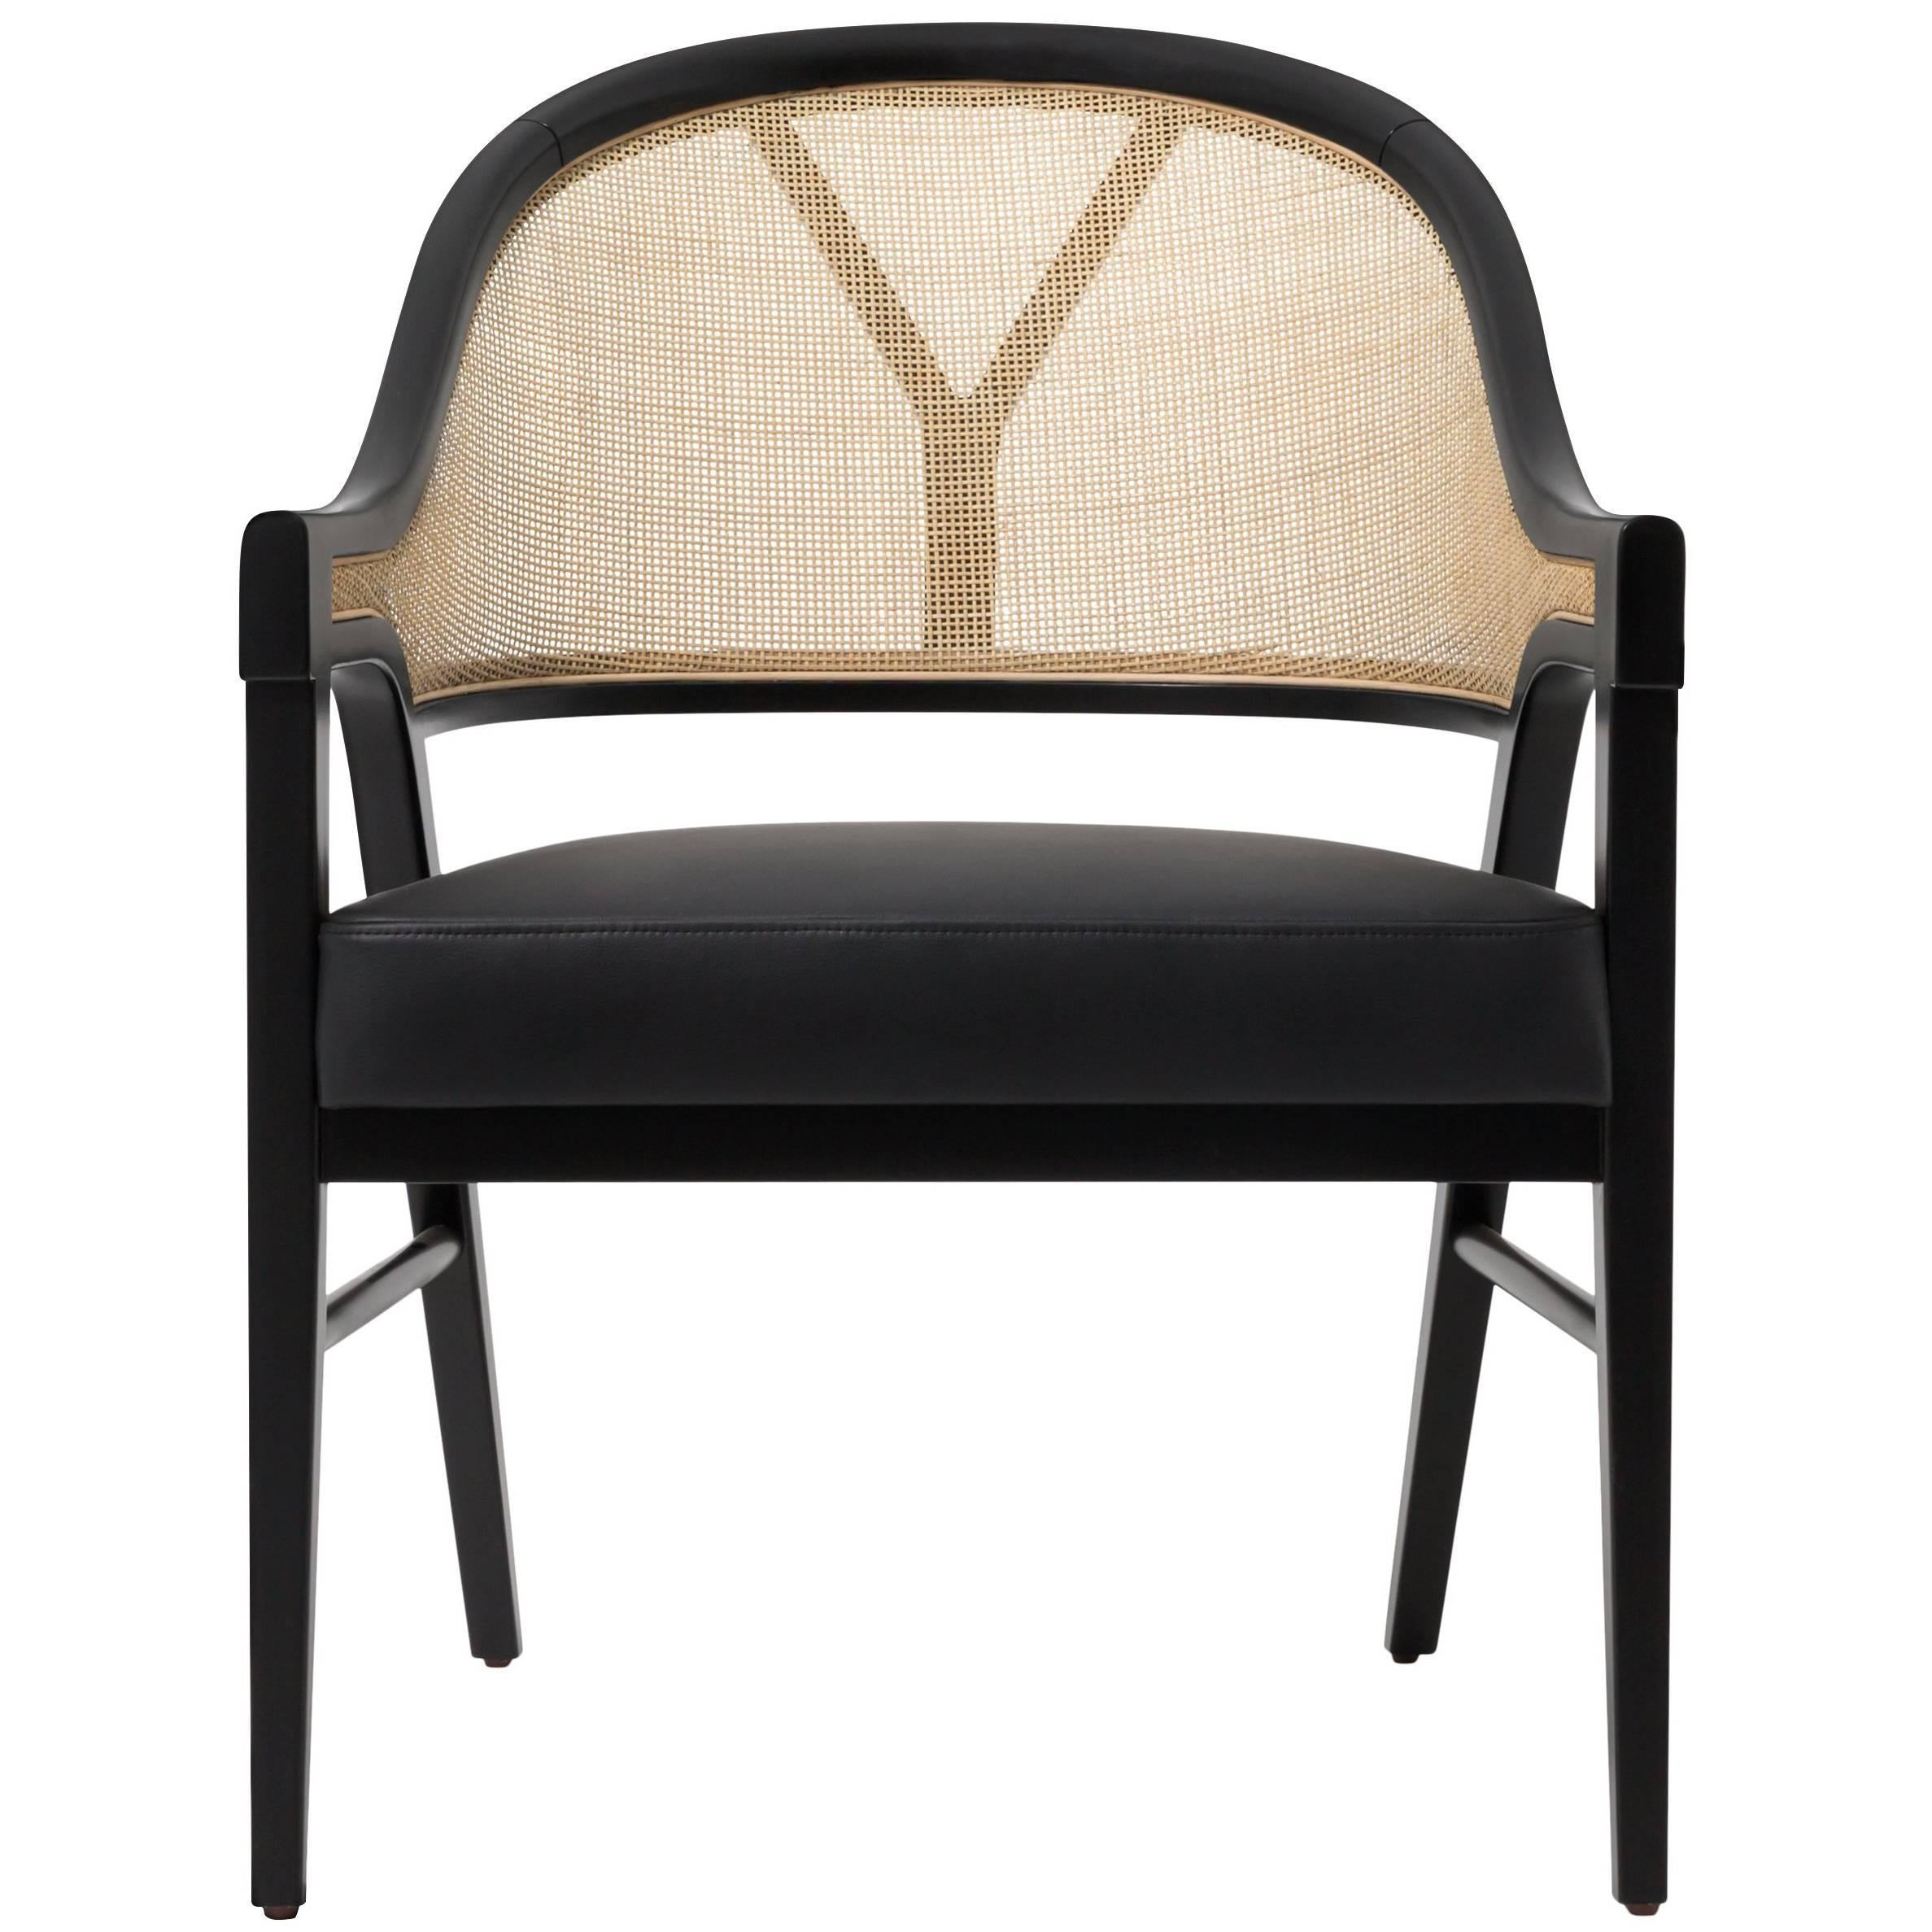 Charmant Contemporary Grace Cane Lounge Chair In Cane And Solid Wood